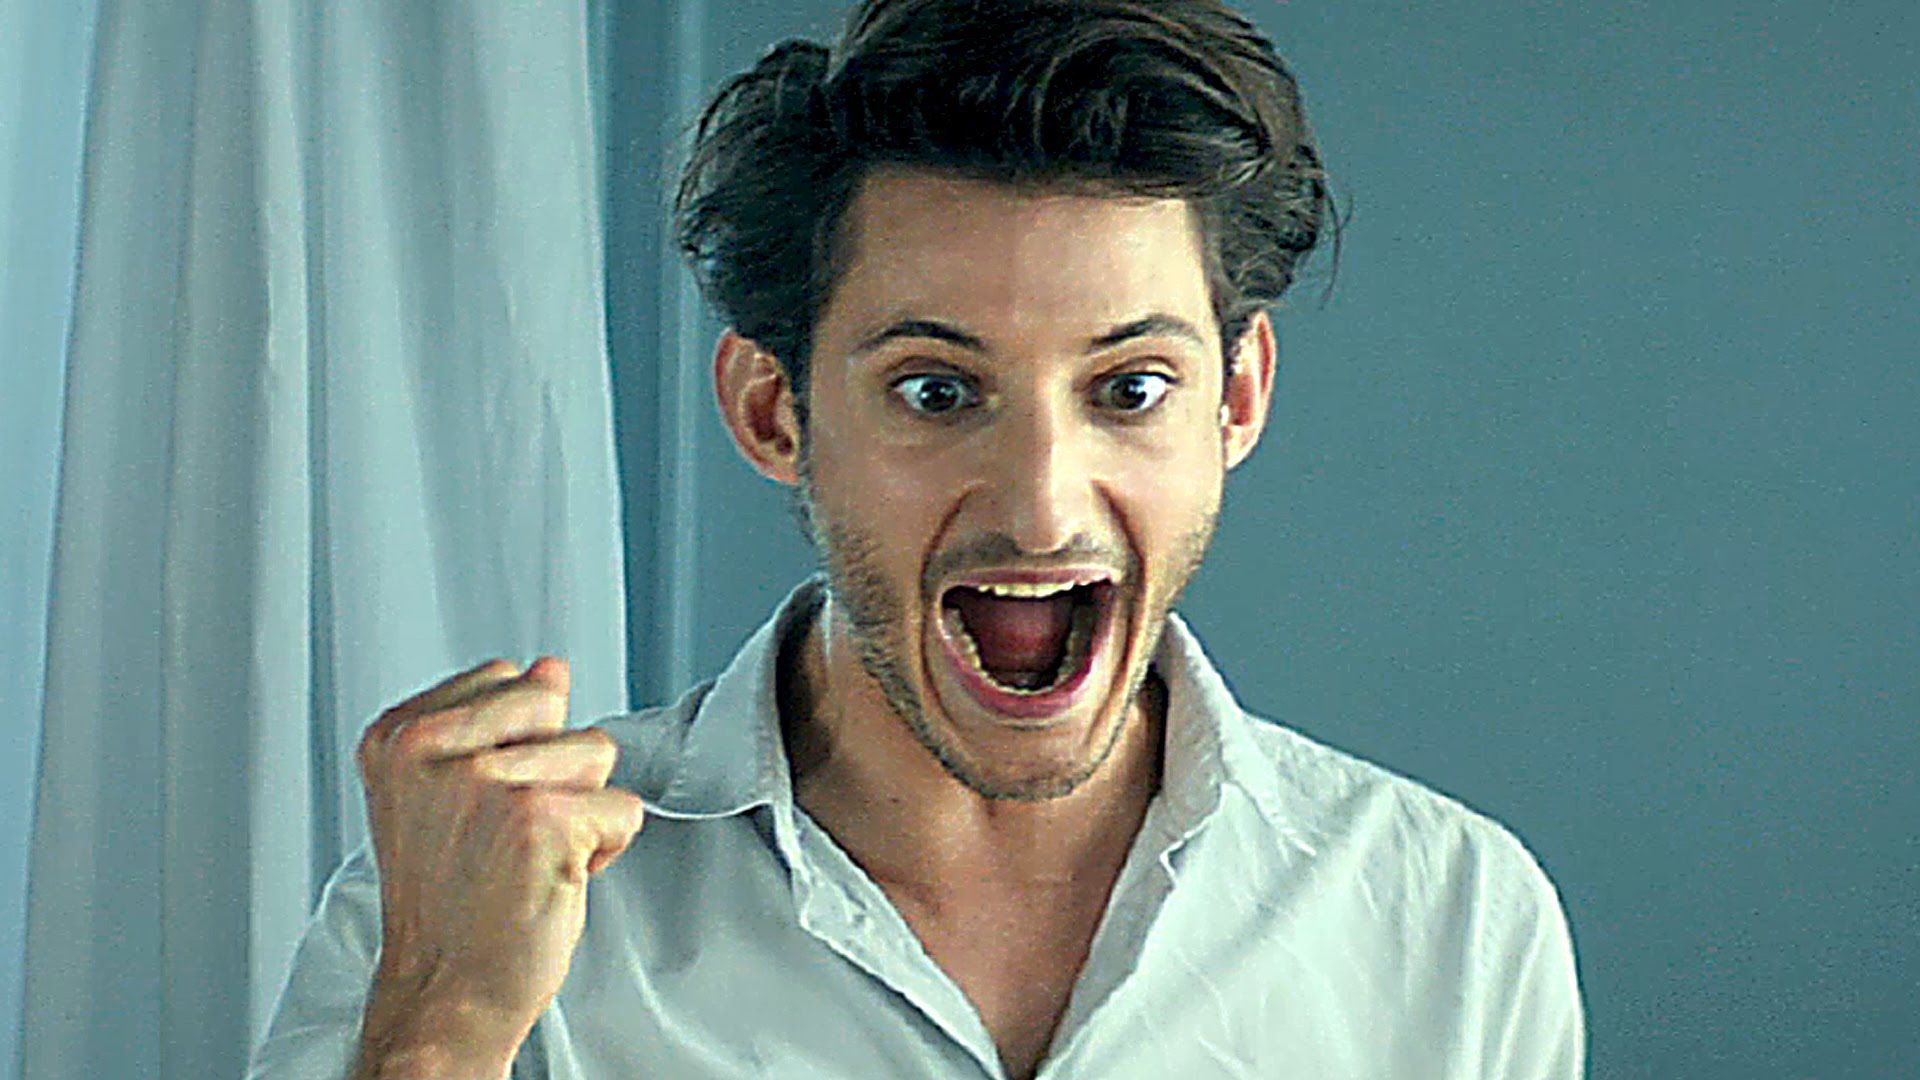 pierre niney lolpierre niney wiki, pierre niney tumblr, pierre niney height, pierre niney vk, pierre niney telerama, pierre niney lol, pierre niney gif, pierre niney imdb, pierre niney et natasha andrews, pierre niney copine, pierre niney dior, pierre niney yves, pierre niney jeune, pierre niney movies, pierre niney wiki fr, pierre niney wdw, pierre niney cesar, pierre niney instagram, pierre niney личная жизнь, pierre niney films